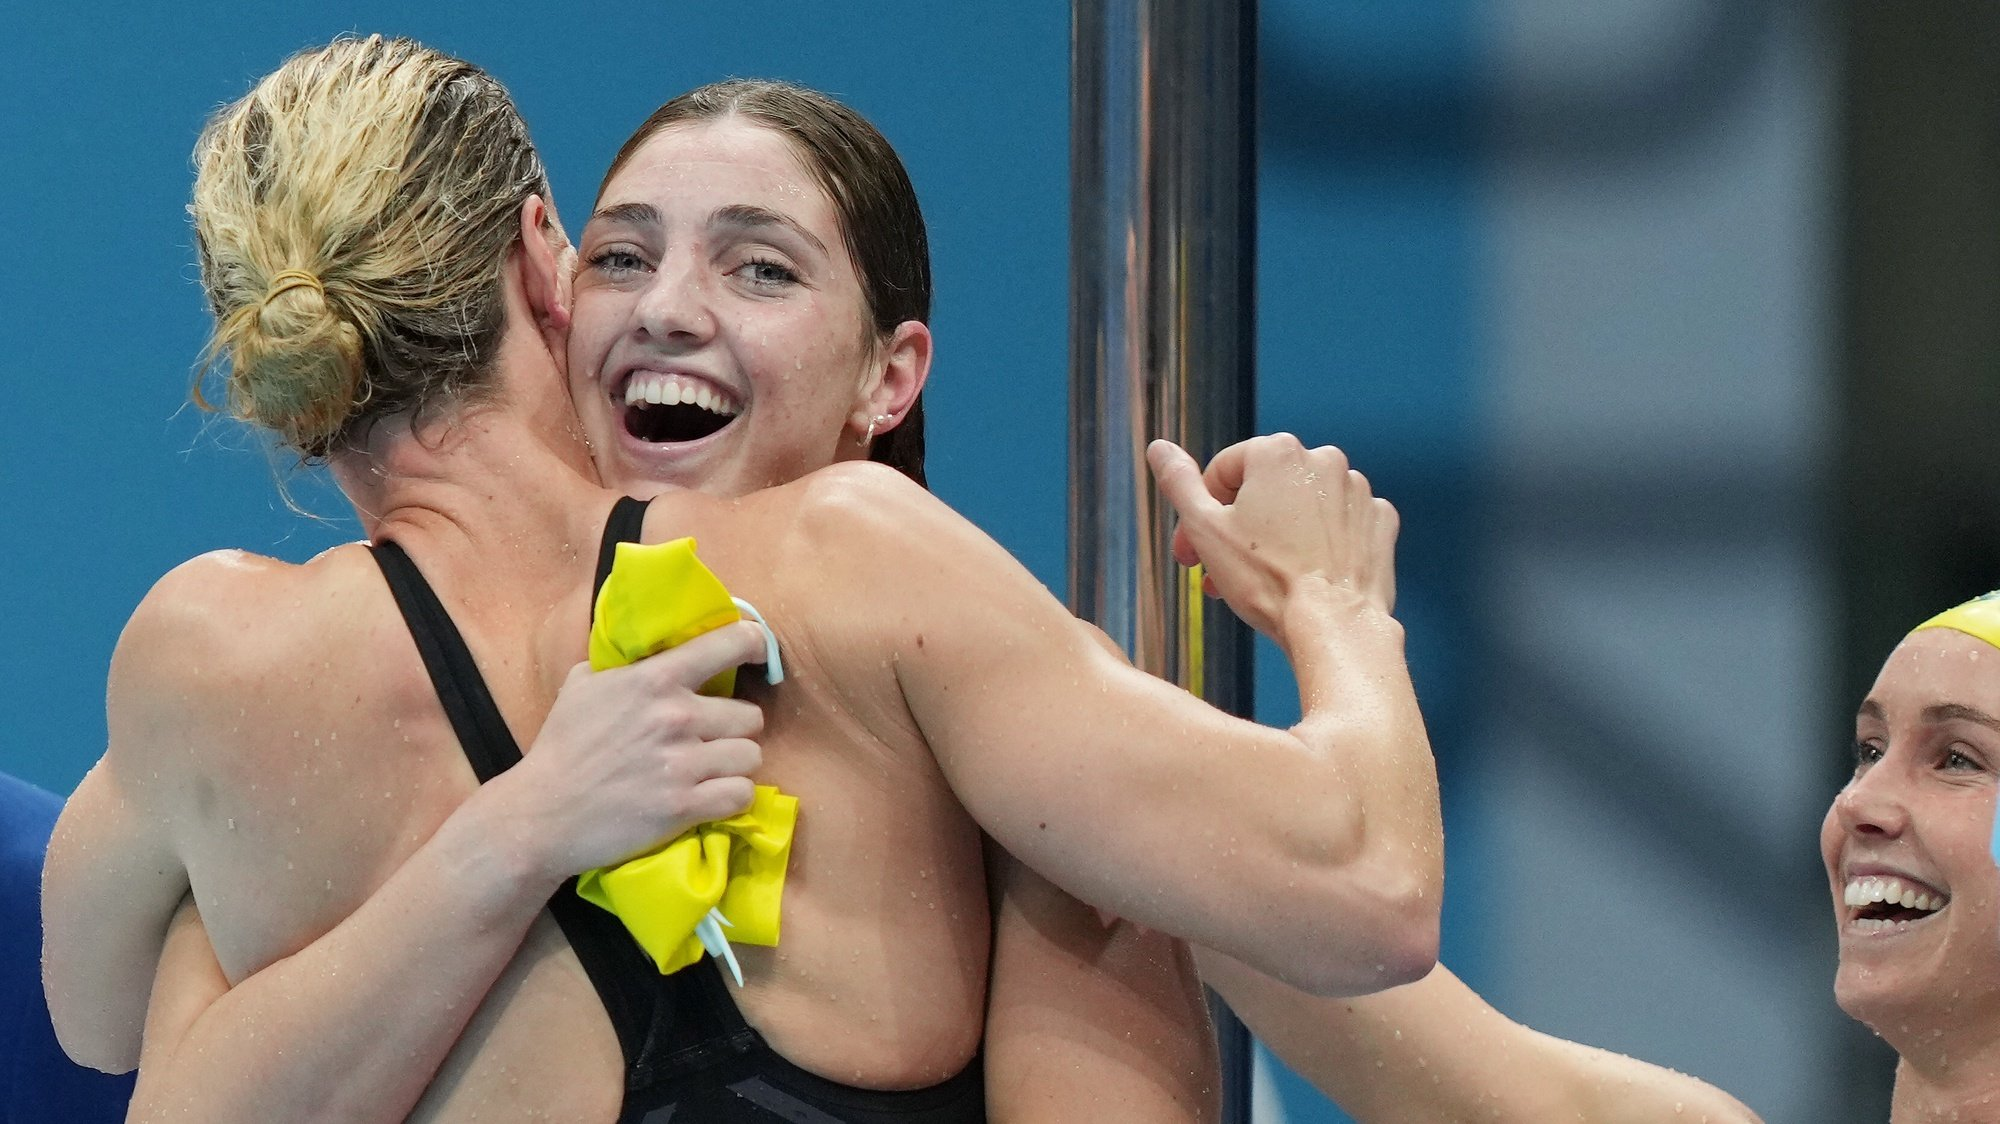 epa09363053 Australia's 4 x 100m Women's freestyle team of Cate Campbell, Emma McKeon, Meg Harris and Bronte Campbell celebrate after winning the Gold Medal with a world record swim in the Women's 4 x 100m Freestyle Relay final during the Tokyo Olympic Games at the Tokyo Aquatic Centre in Tokyo, Japan, 25 July 2021.  EPA/JOE GIDDENS NO ARCHIVING, EDITORIAL USE ONLY, IMAGES TO BE USED FOR NEWS REPORTING PURPOSES ONLY, NO COMMERCIAL USE WHATSOEVER, NO USE IN BOOKS WITHOUT PRIOR WRITTEN CONSENT FROM AAP AUSTRALIA AND NEW ZEALAND OUT